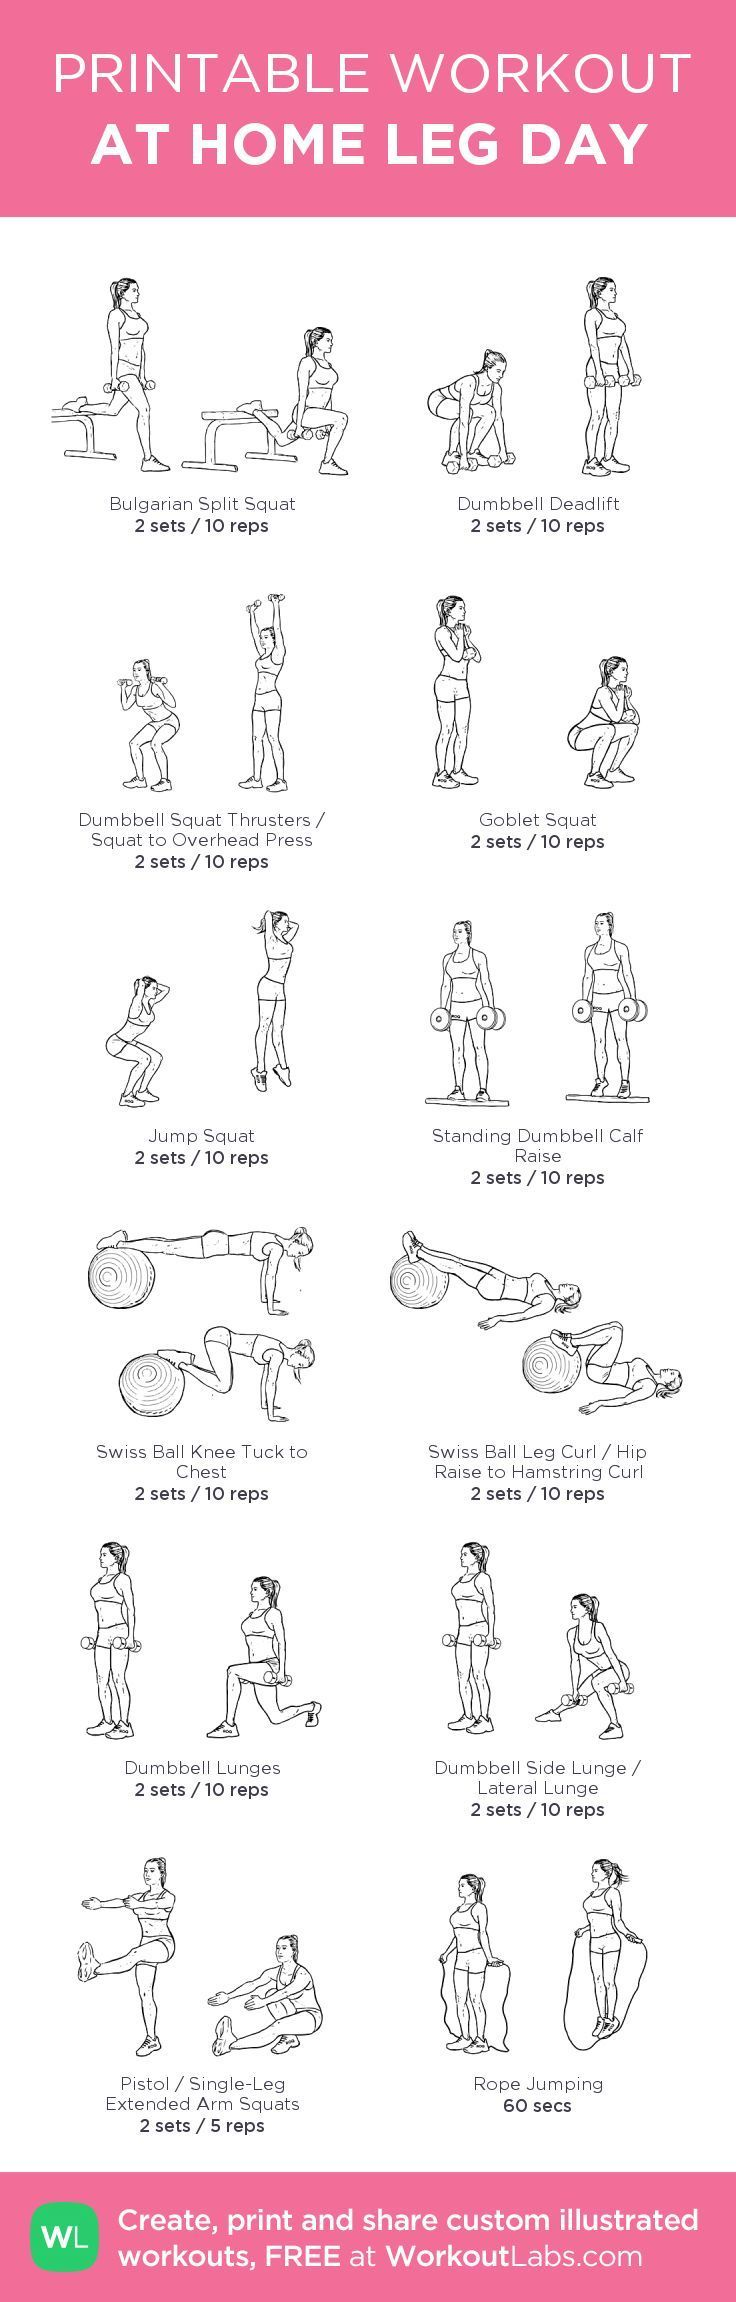 12 At Home Leg Day Workout for Women. The following leg day workout routine is very effective and diversify that can be perform in any order. As you progre